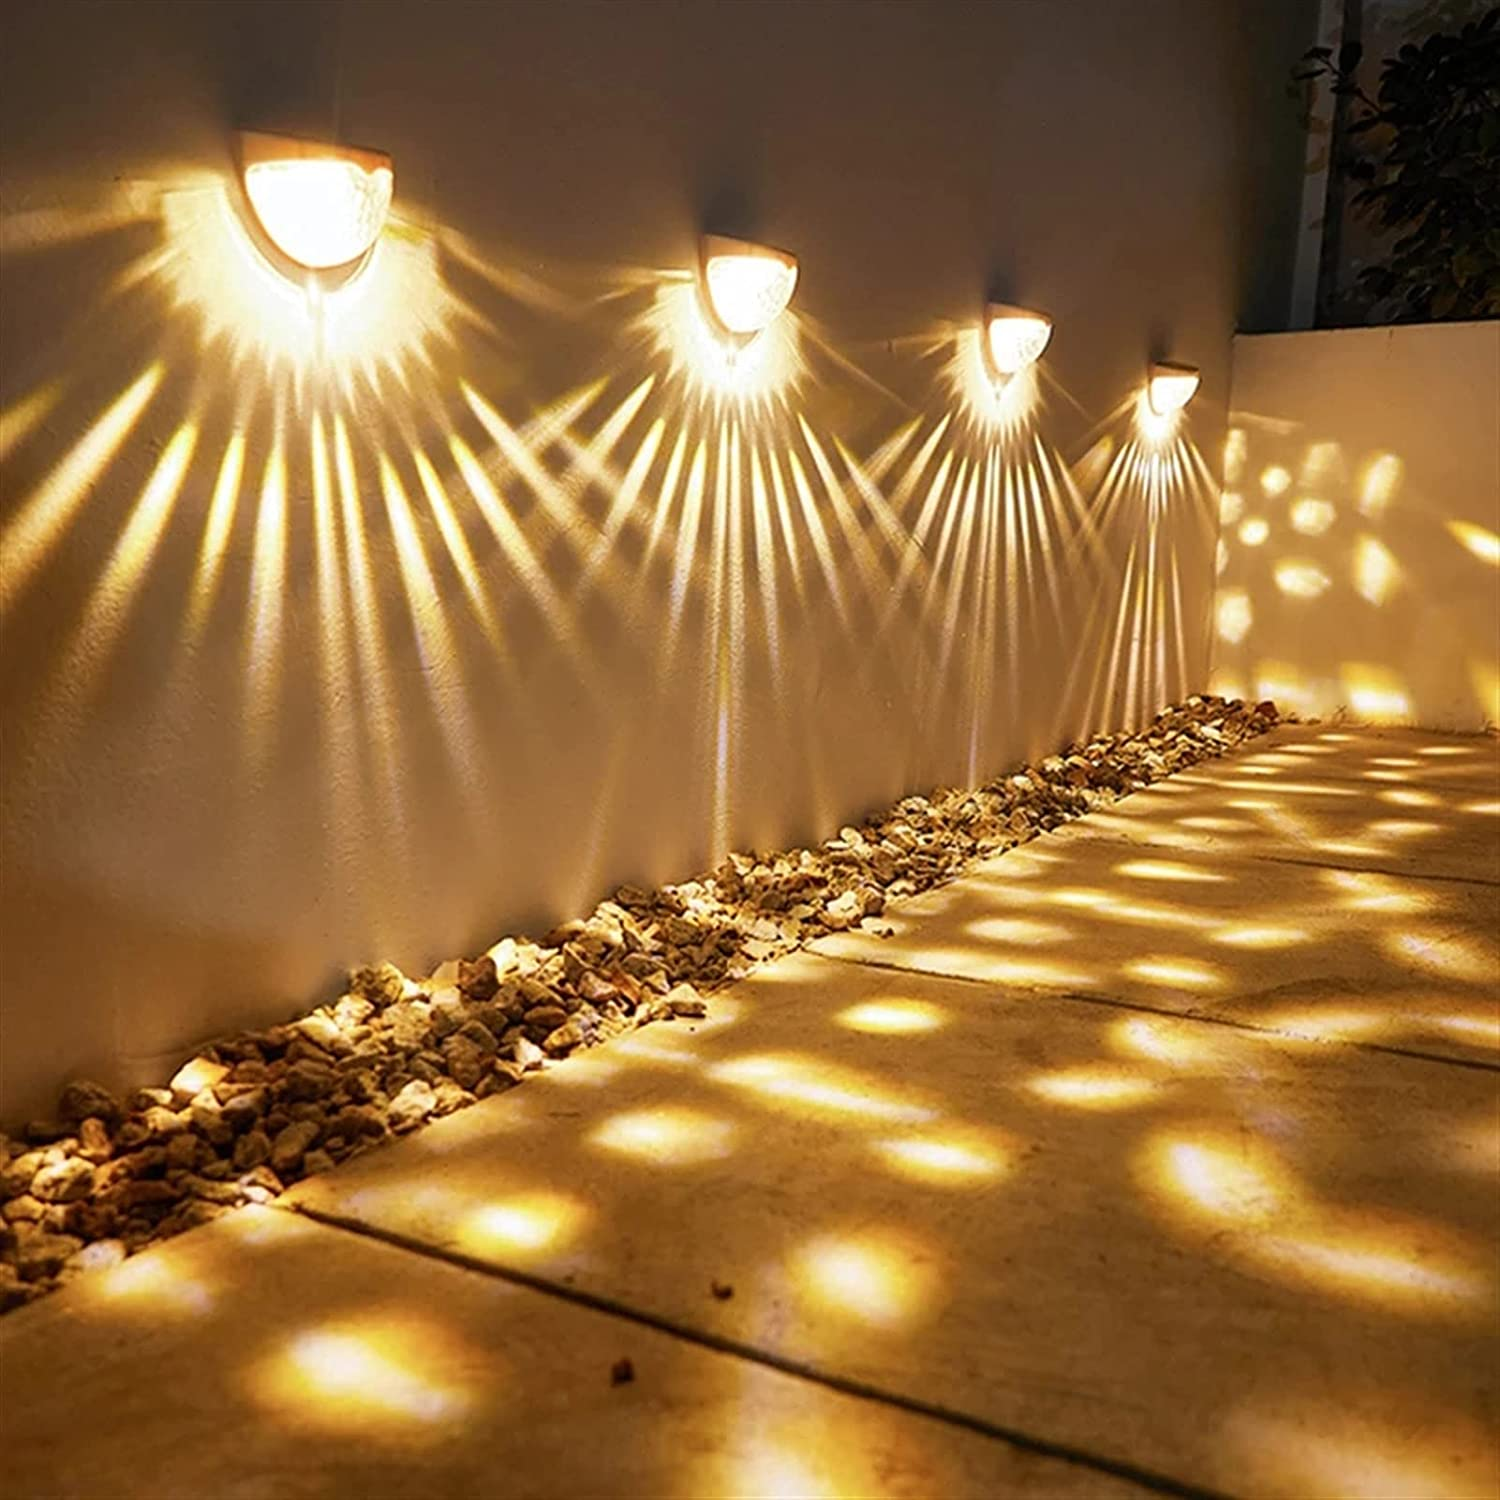 JSJJAWD Wall lamp Summer LED Lamps Ener Solar Light Washington Mall Outdoor Discount is also underway